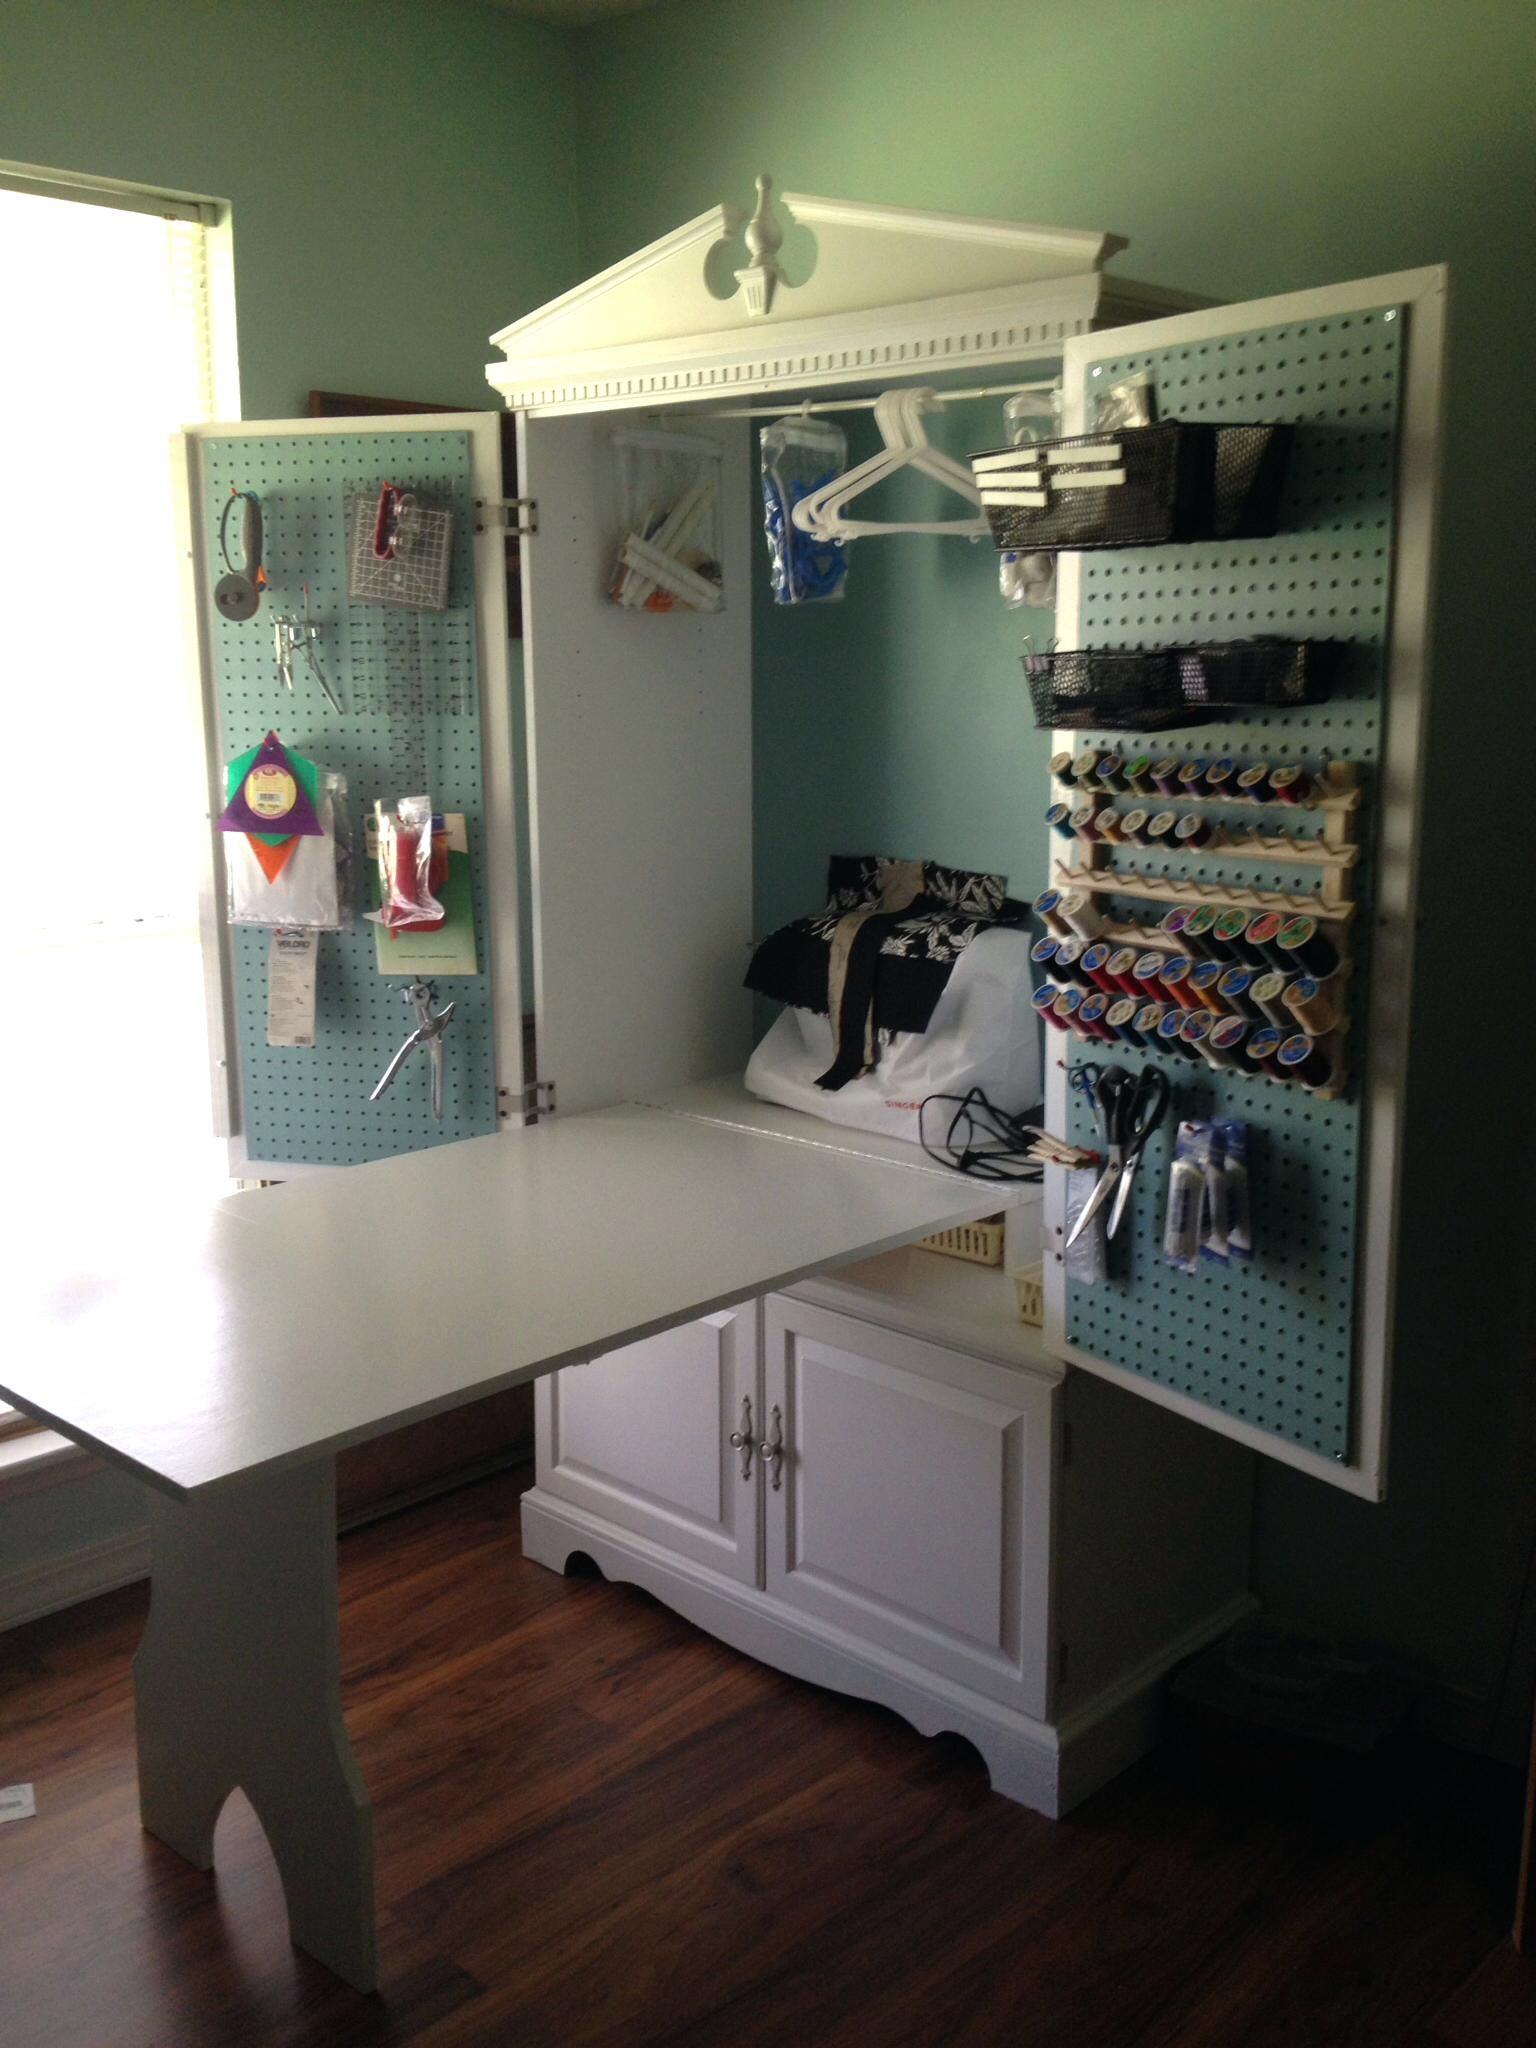 Craft Armoire Plans Turned Into A Sewing Cabinet With Fold Up Table Turned Into A Sewing Cabinet With Fold Up Ta Sewing Rooms Sewing Cabinet Craft Room Storage